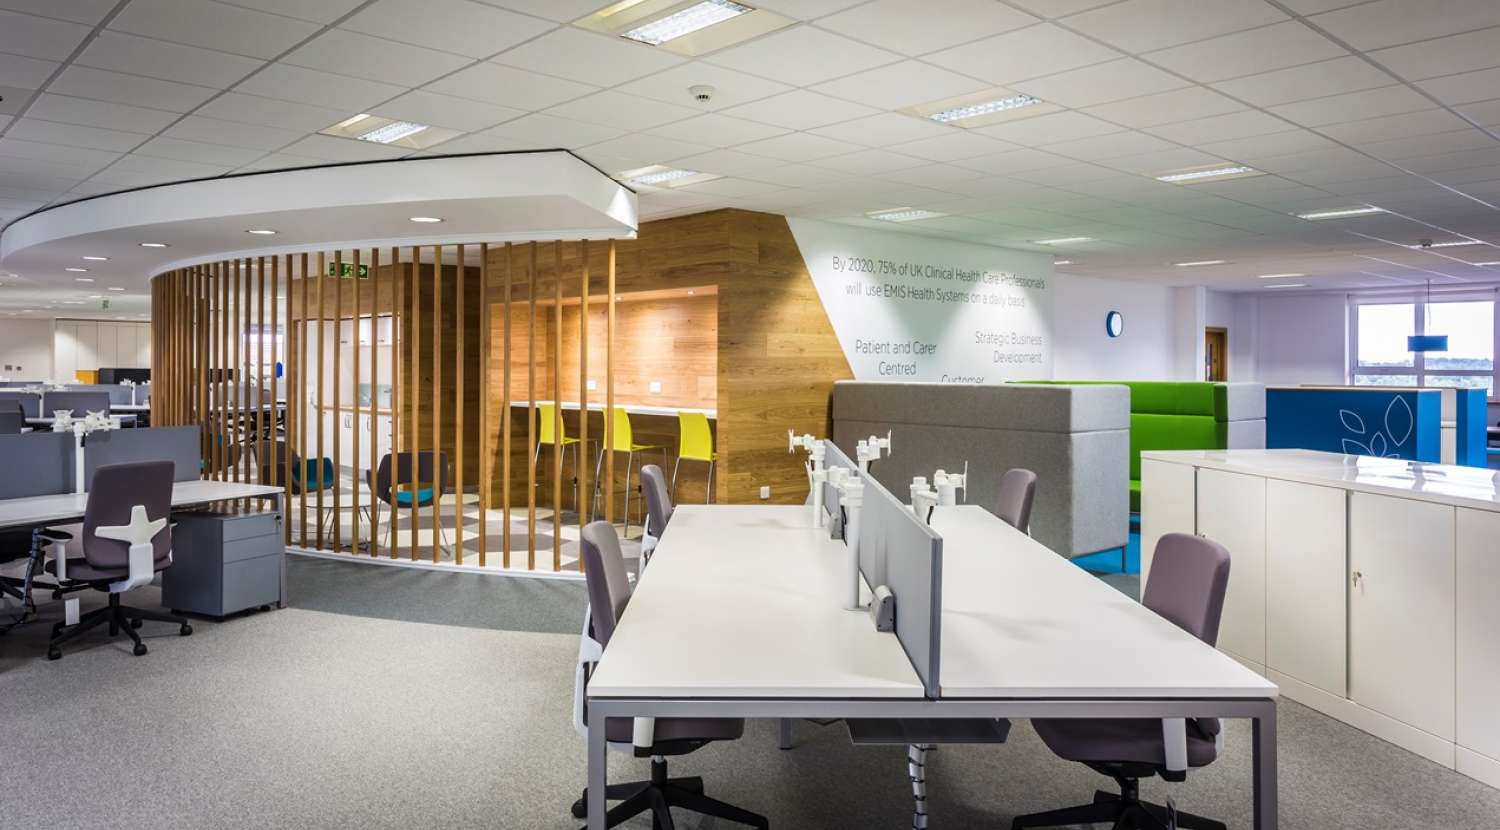 Office design and build for emis health overbury for Office design wellbeing